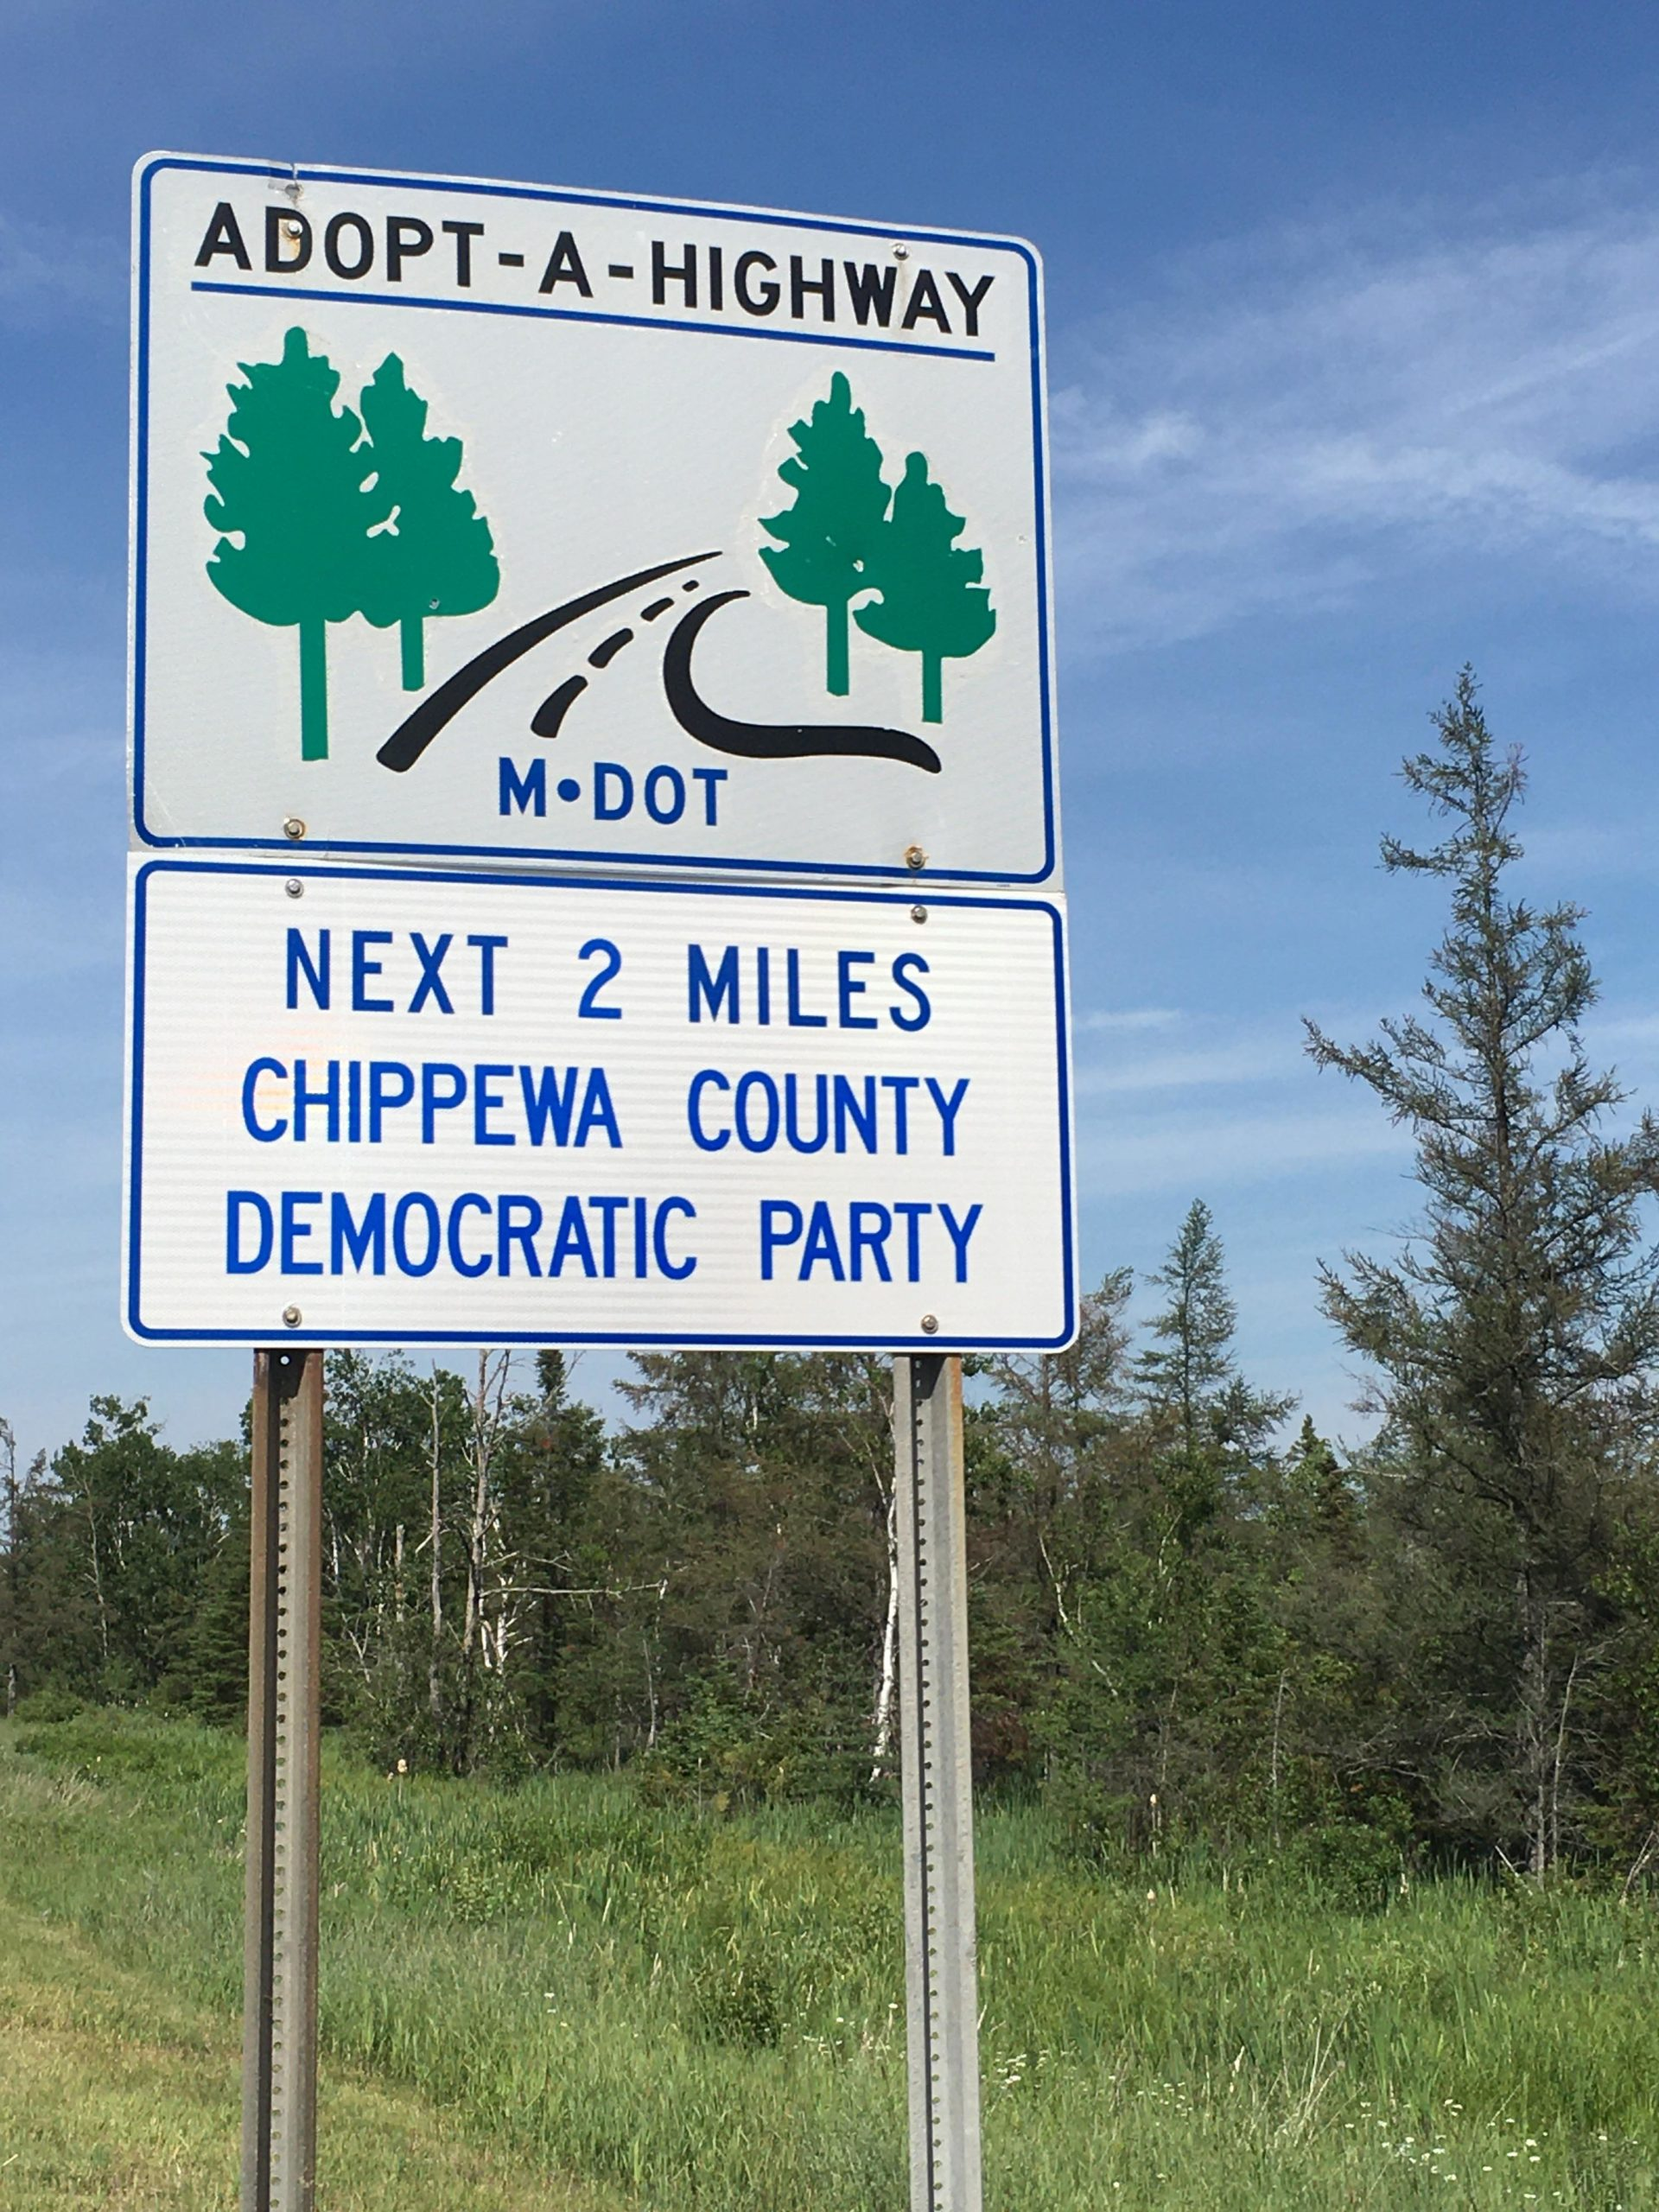 Michigan Adopt-A-Highway Next Two Miles Chippewa County Democratic Party